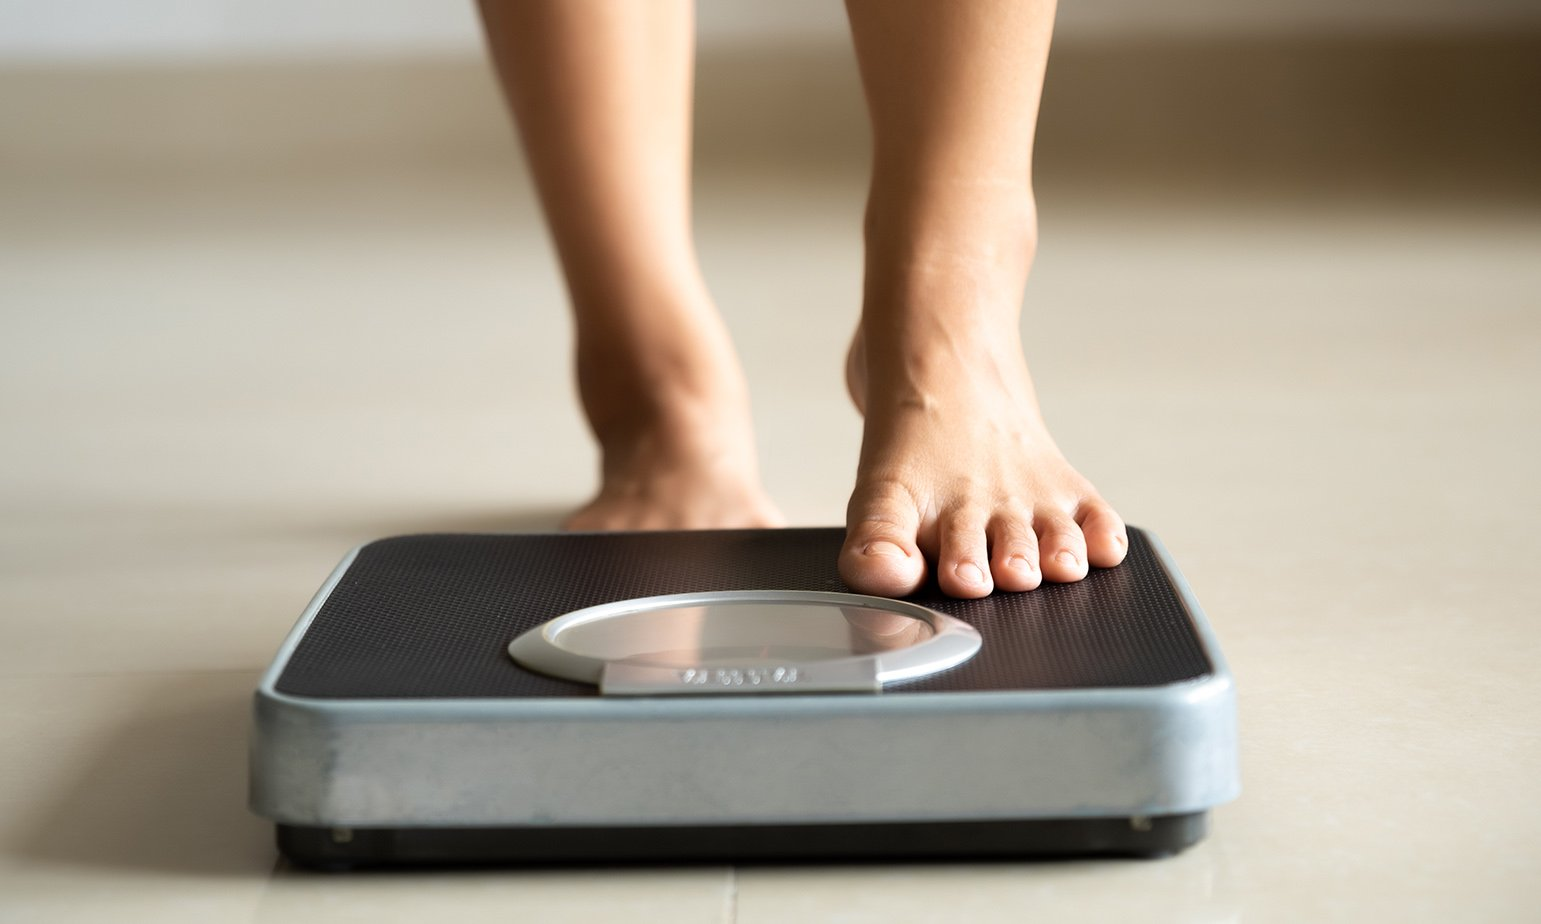 Focus on Long-term Health and Weight Loss Success